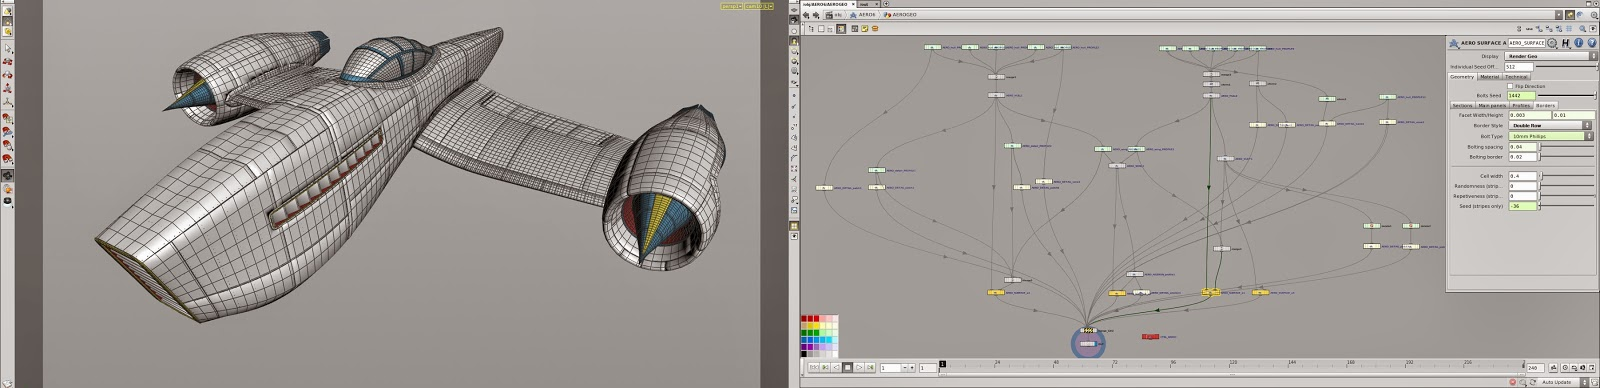 Project Aero: Procedural Aircraft Design Toolkit for SideFX Houdini